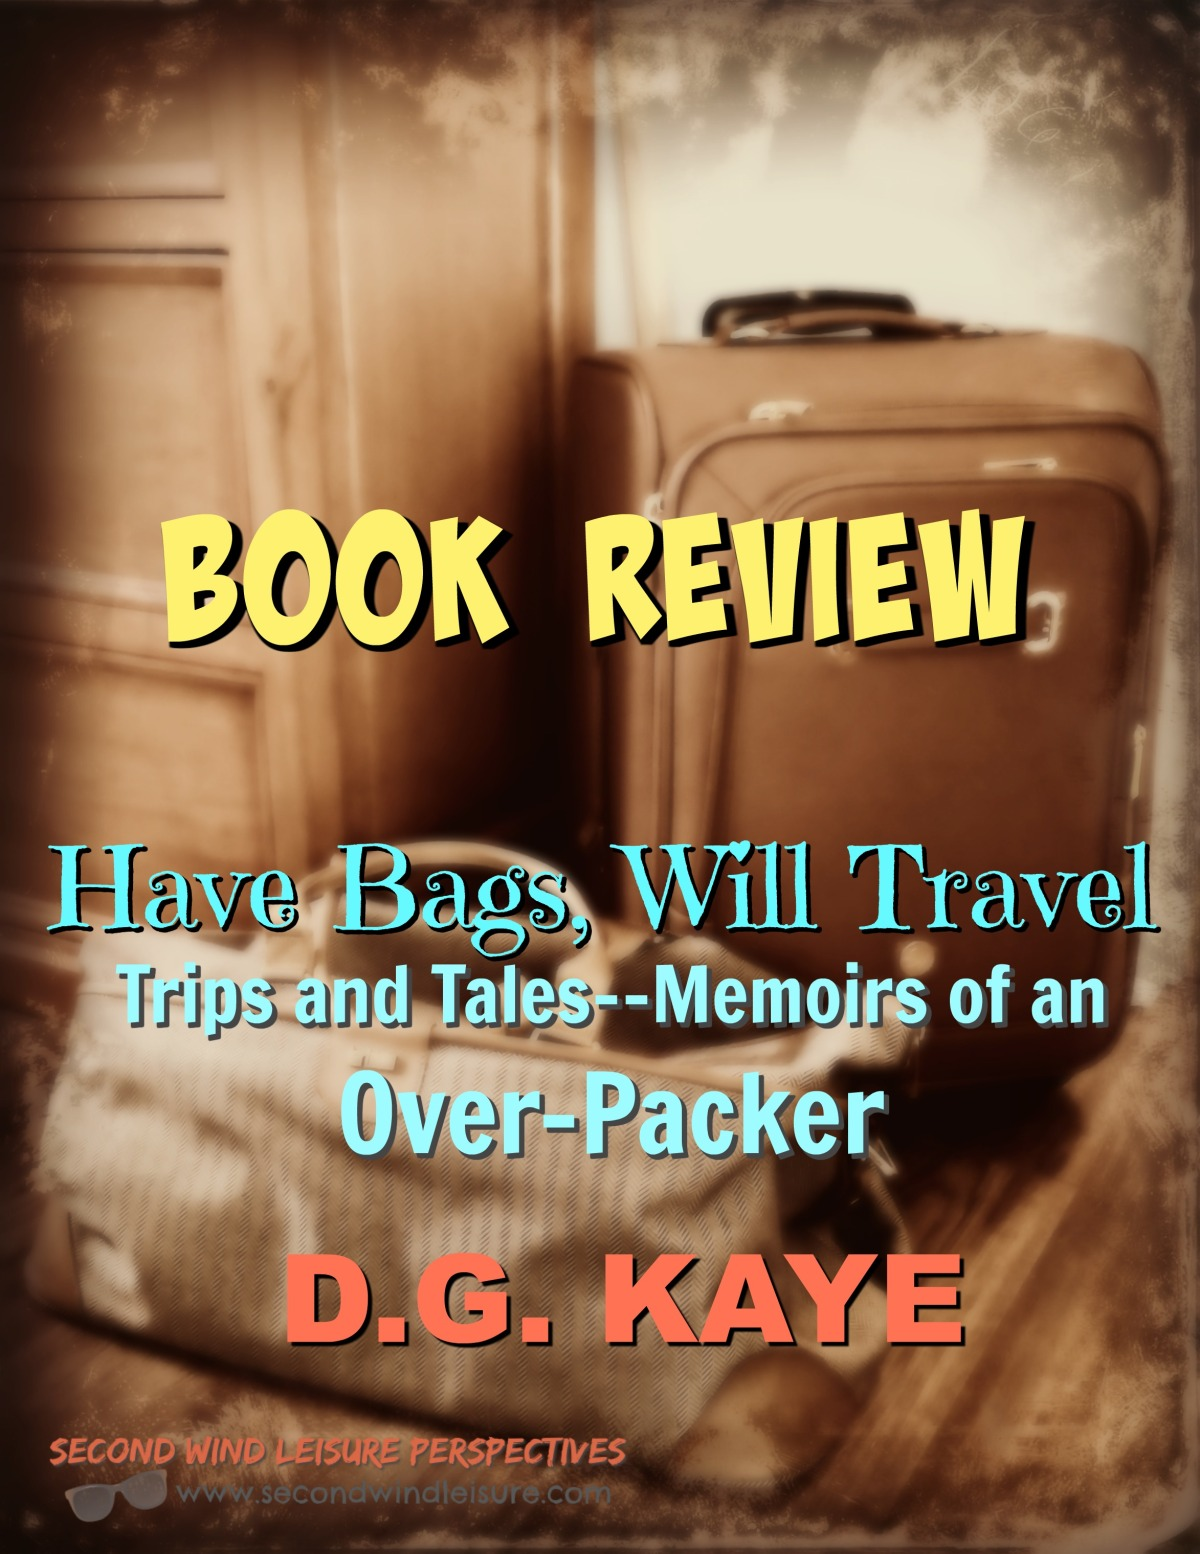 Kaye shares valuable advice for navigating airport security, planning for purchases and dealing with germs.